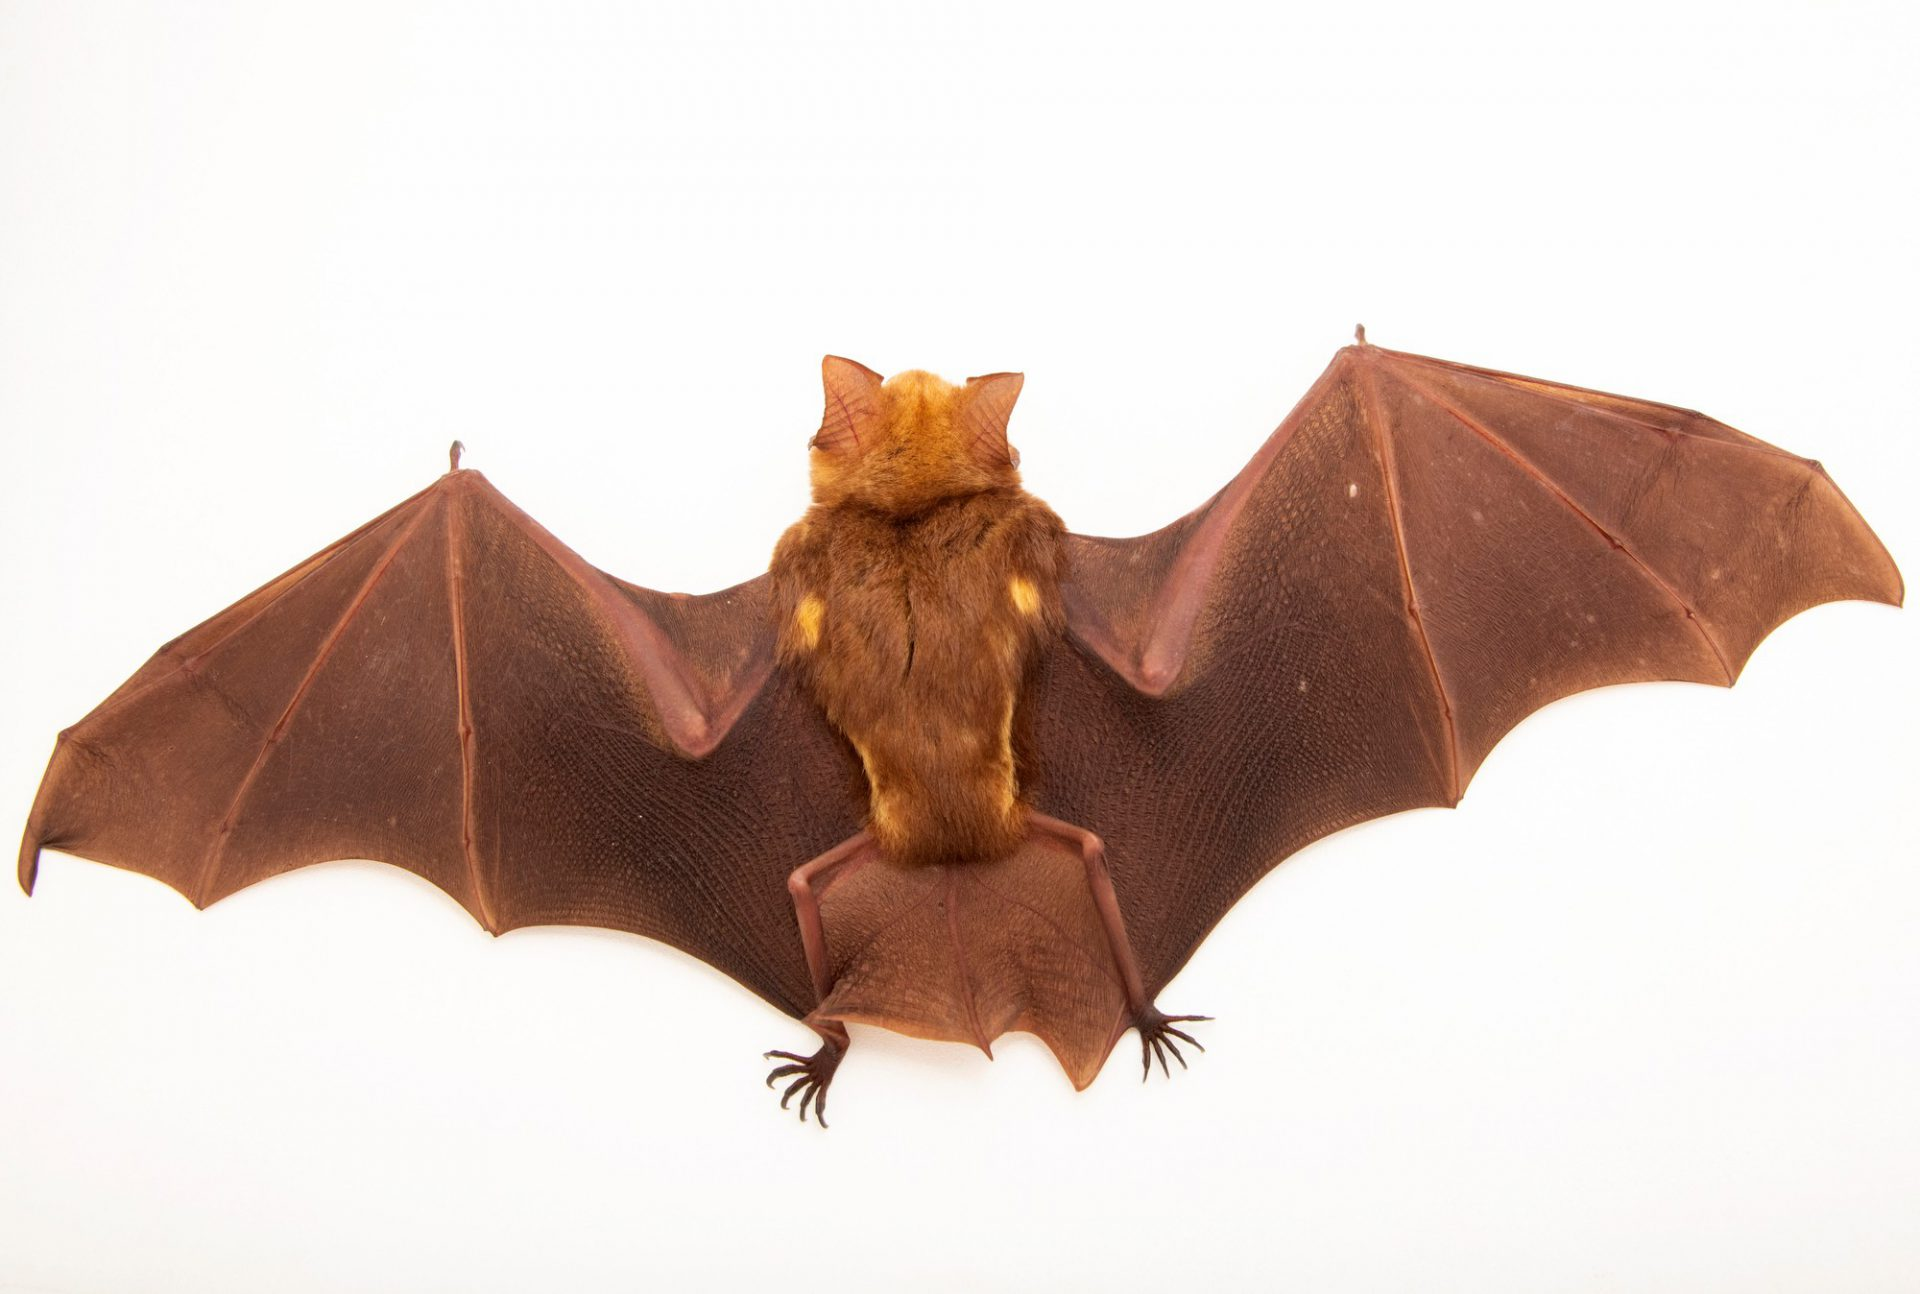 Photo: A diadem leaf-nosed bat (Hipposideros diadema) at the University of the Philippines.